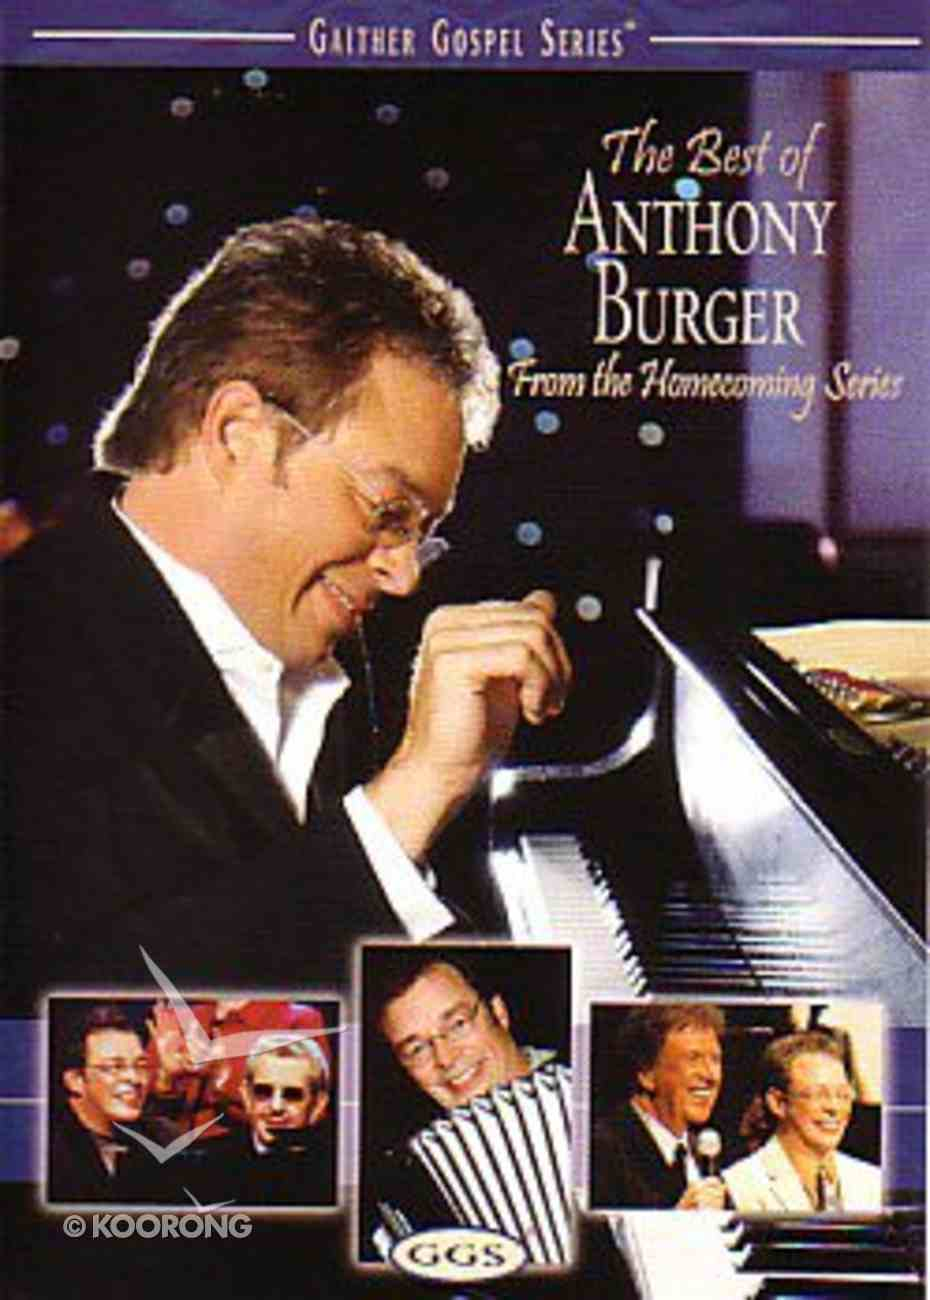 The Best of Anthony Burger (Gaither Gospel Series) DVD